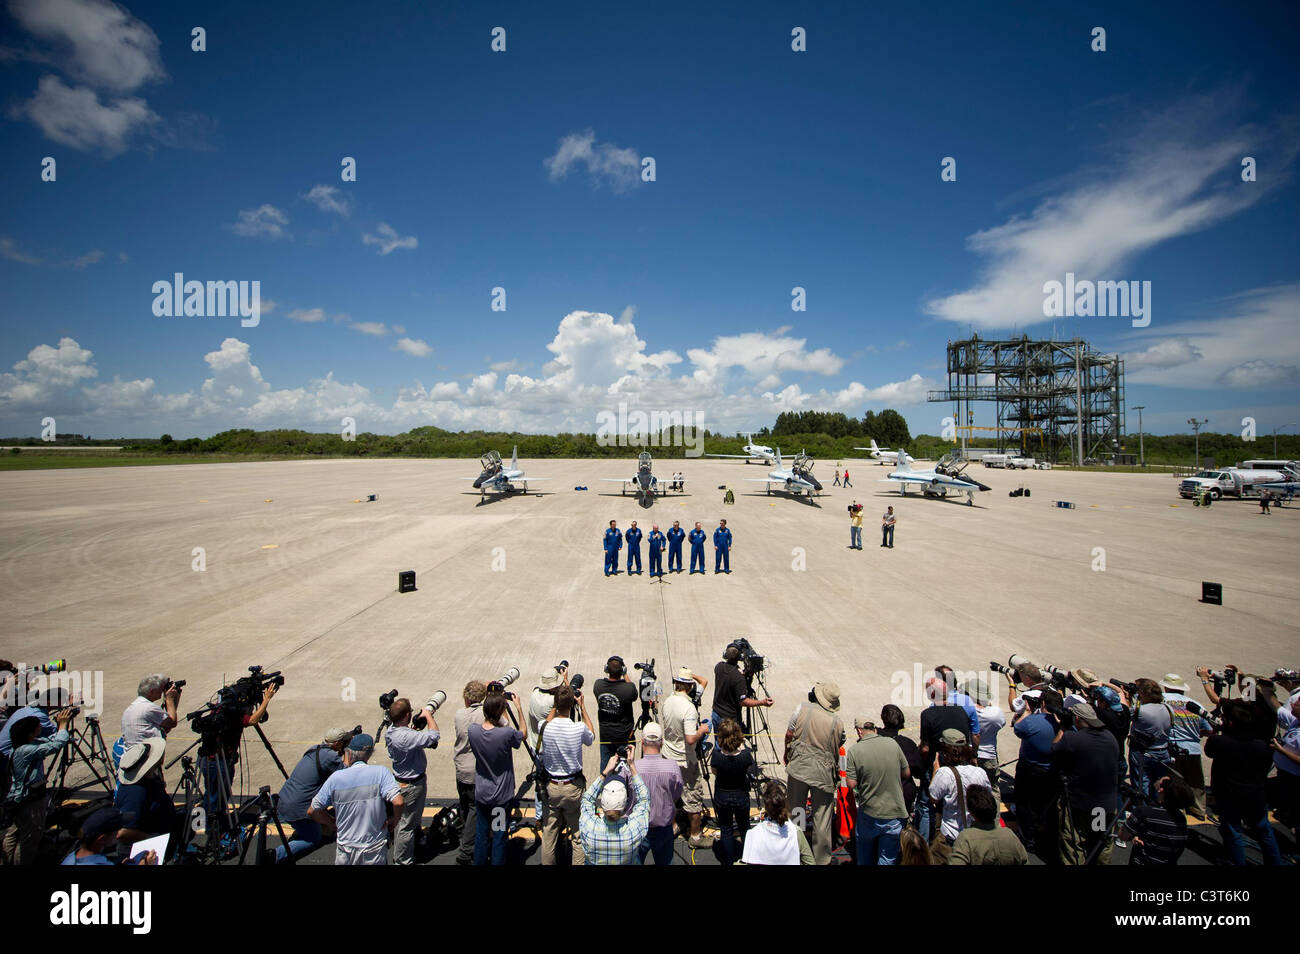 Astronauts Arrive for Launch Media gather at Kennedy Space Center's Shuttle Landing Facility to see the STS - Stock Image